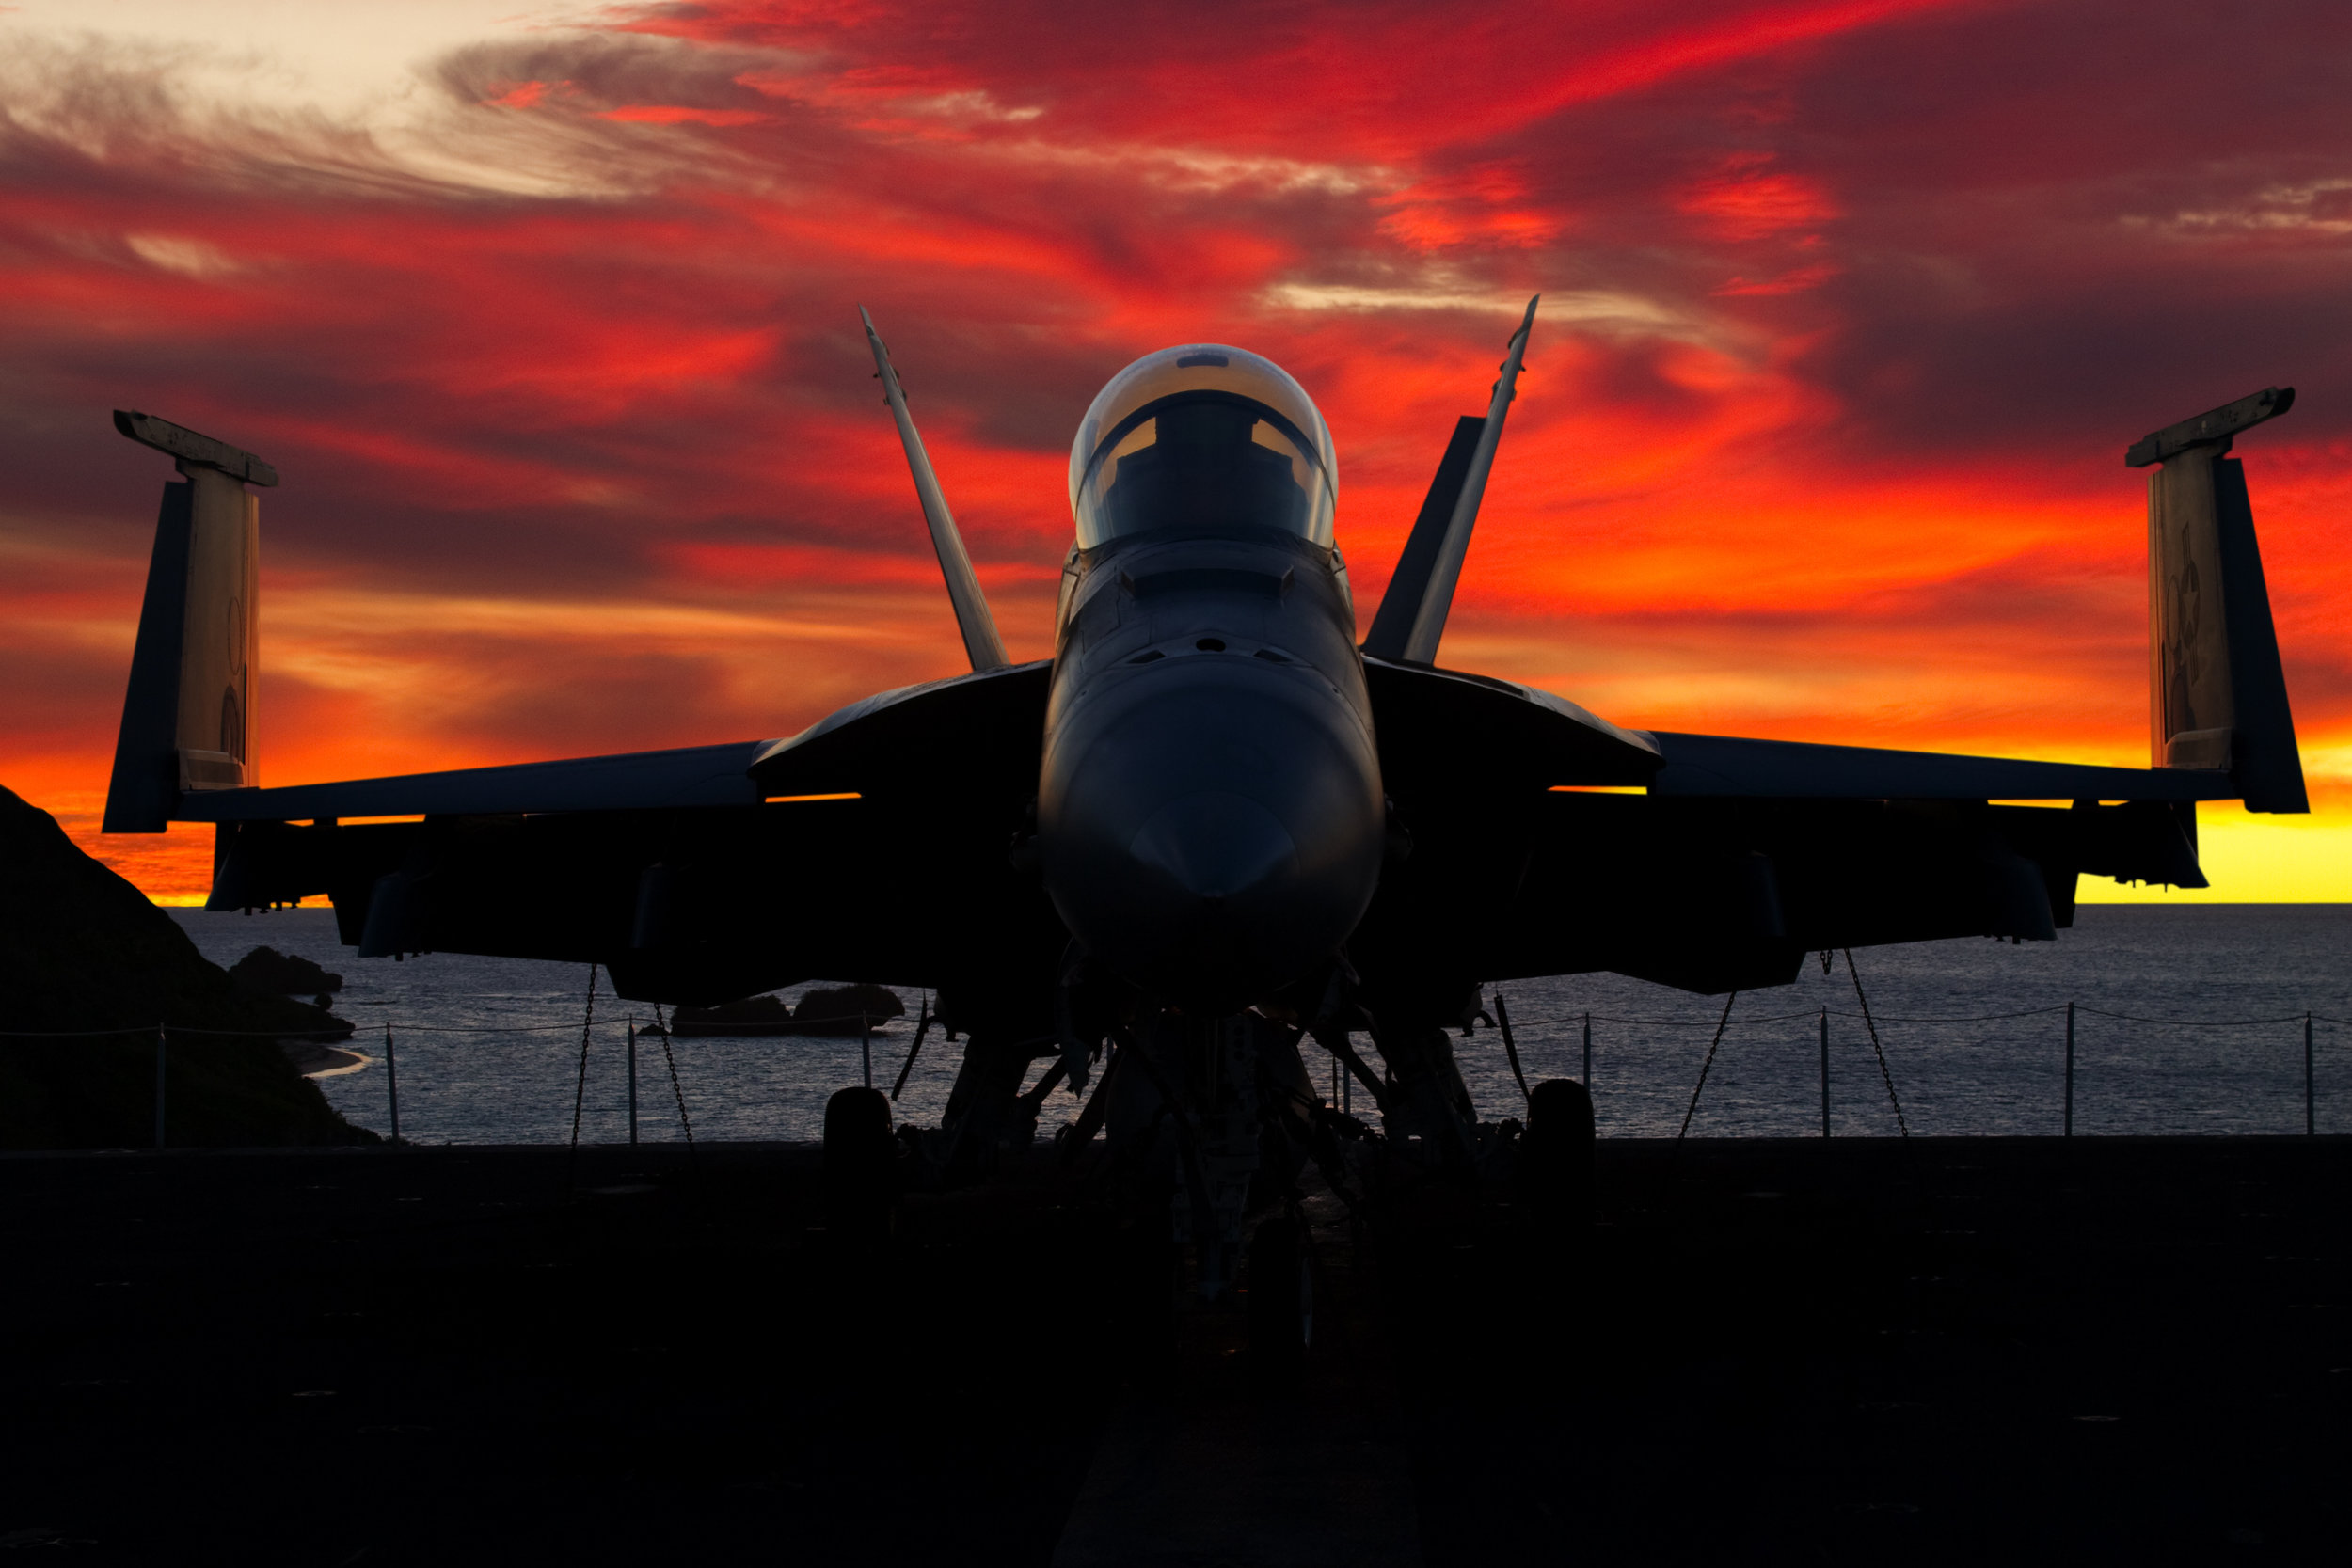 Innovation and Technology - Key Growth Drivers for Aerospace & Defense Market Focus